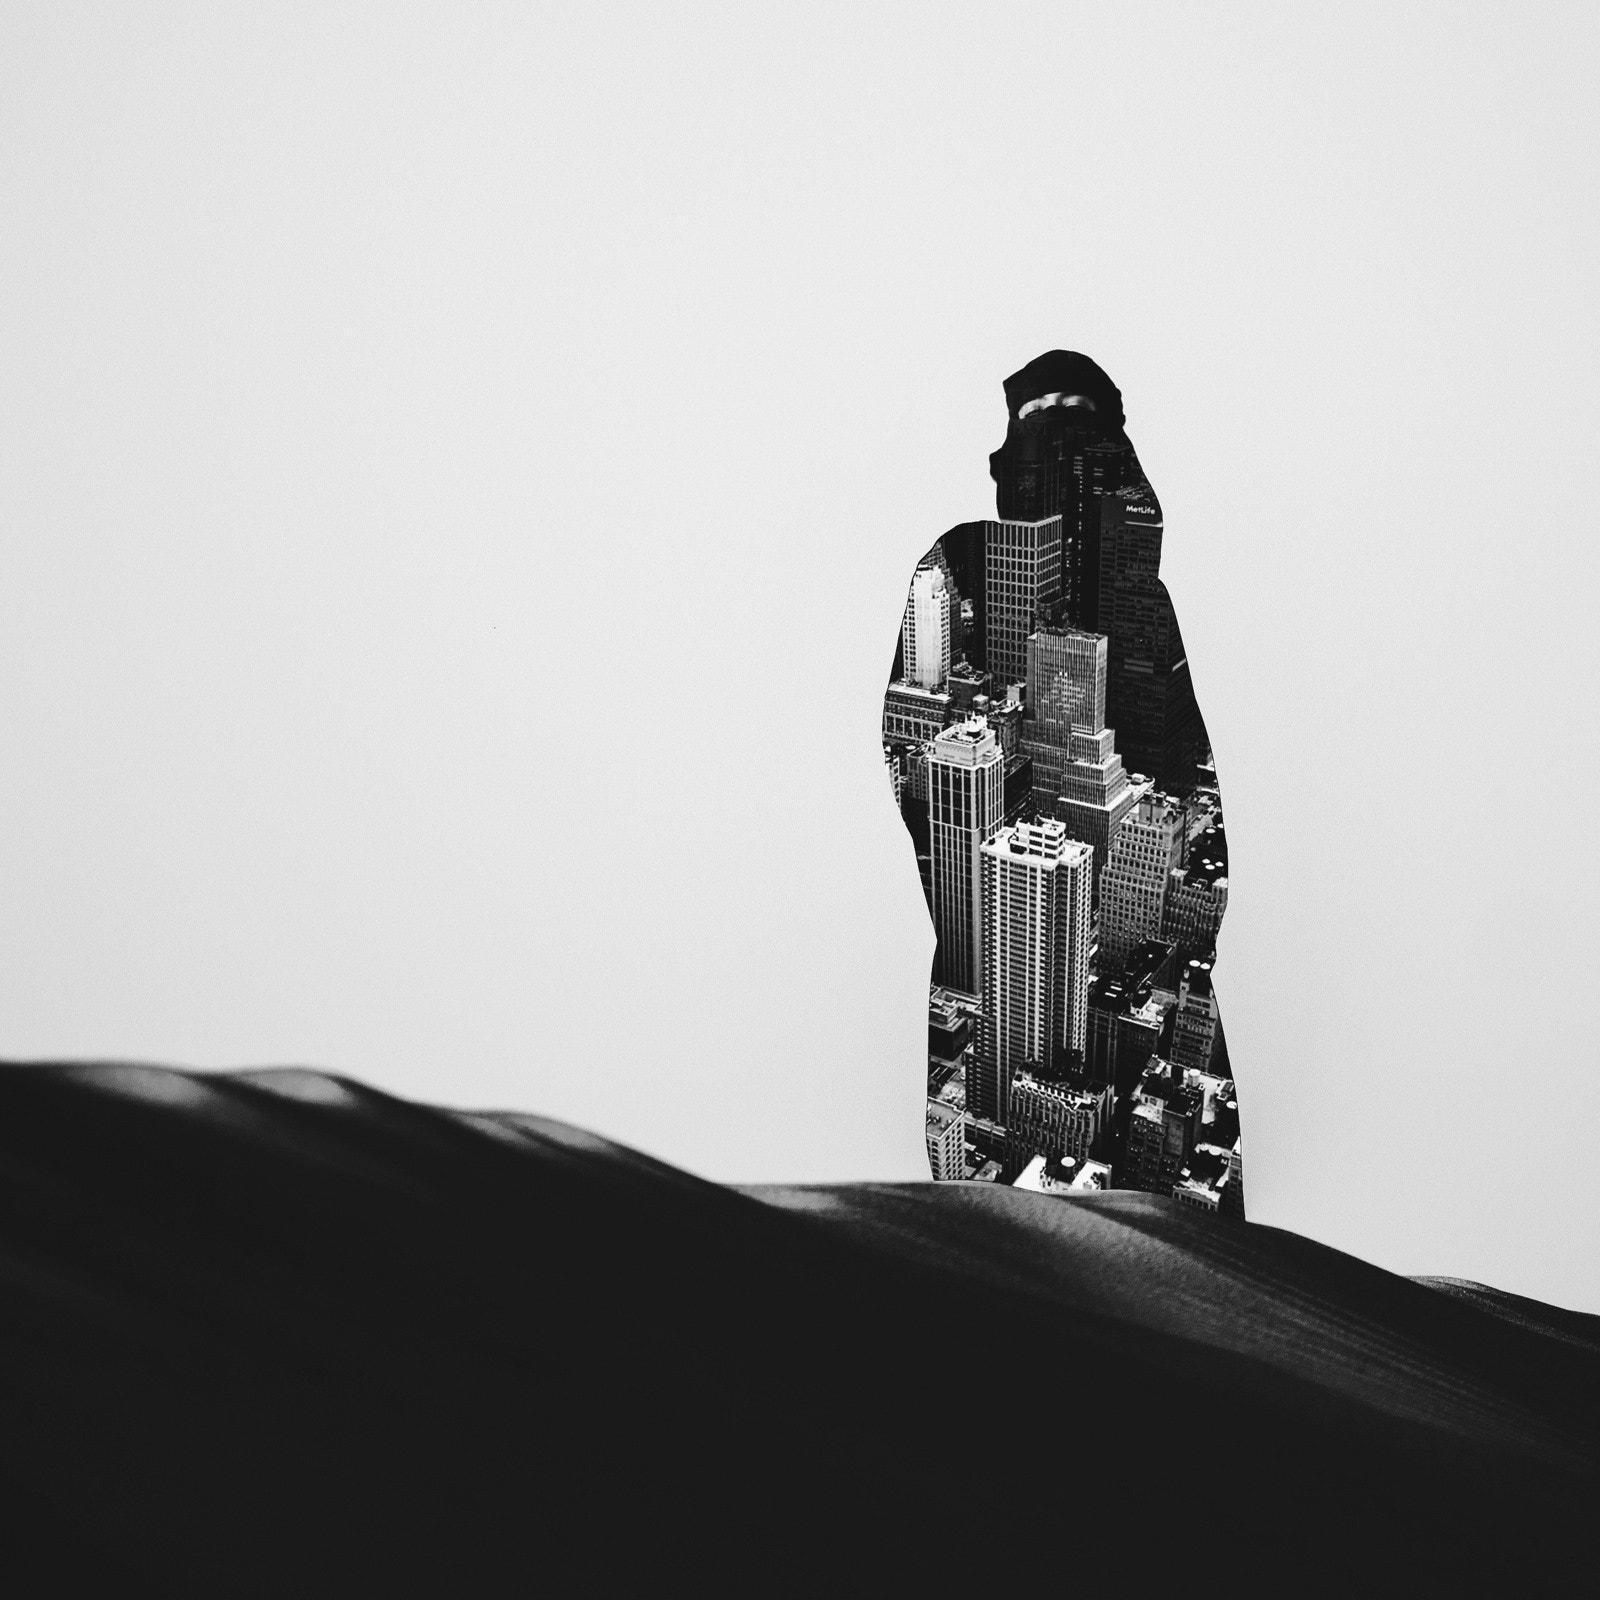 Photograph Loud Desert by yaser almajed on 500px